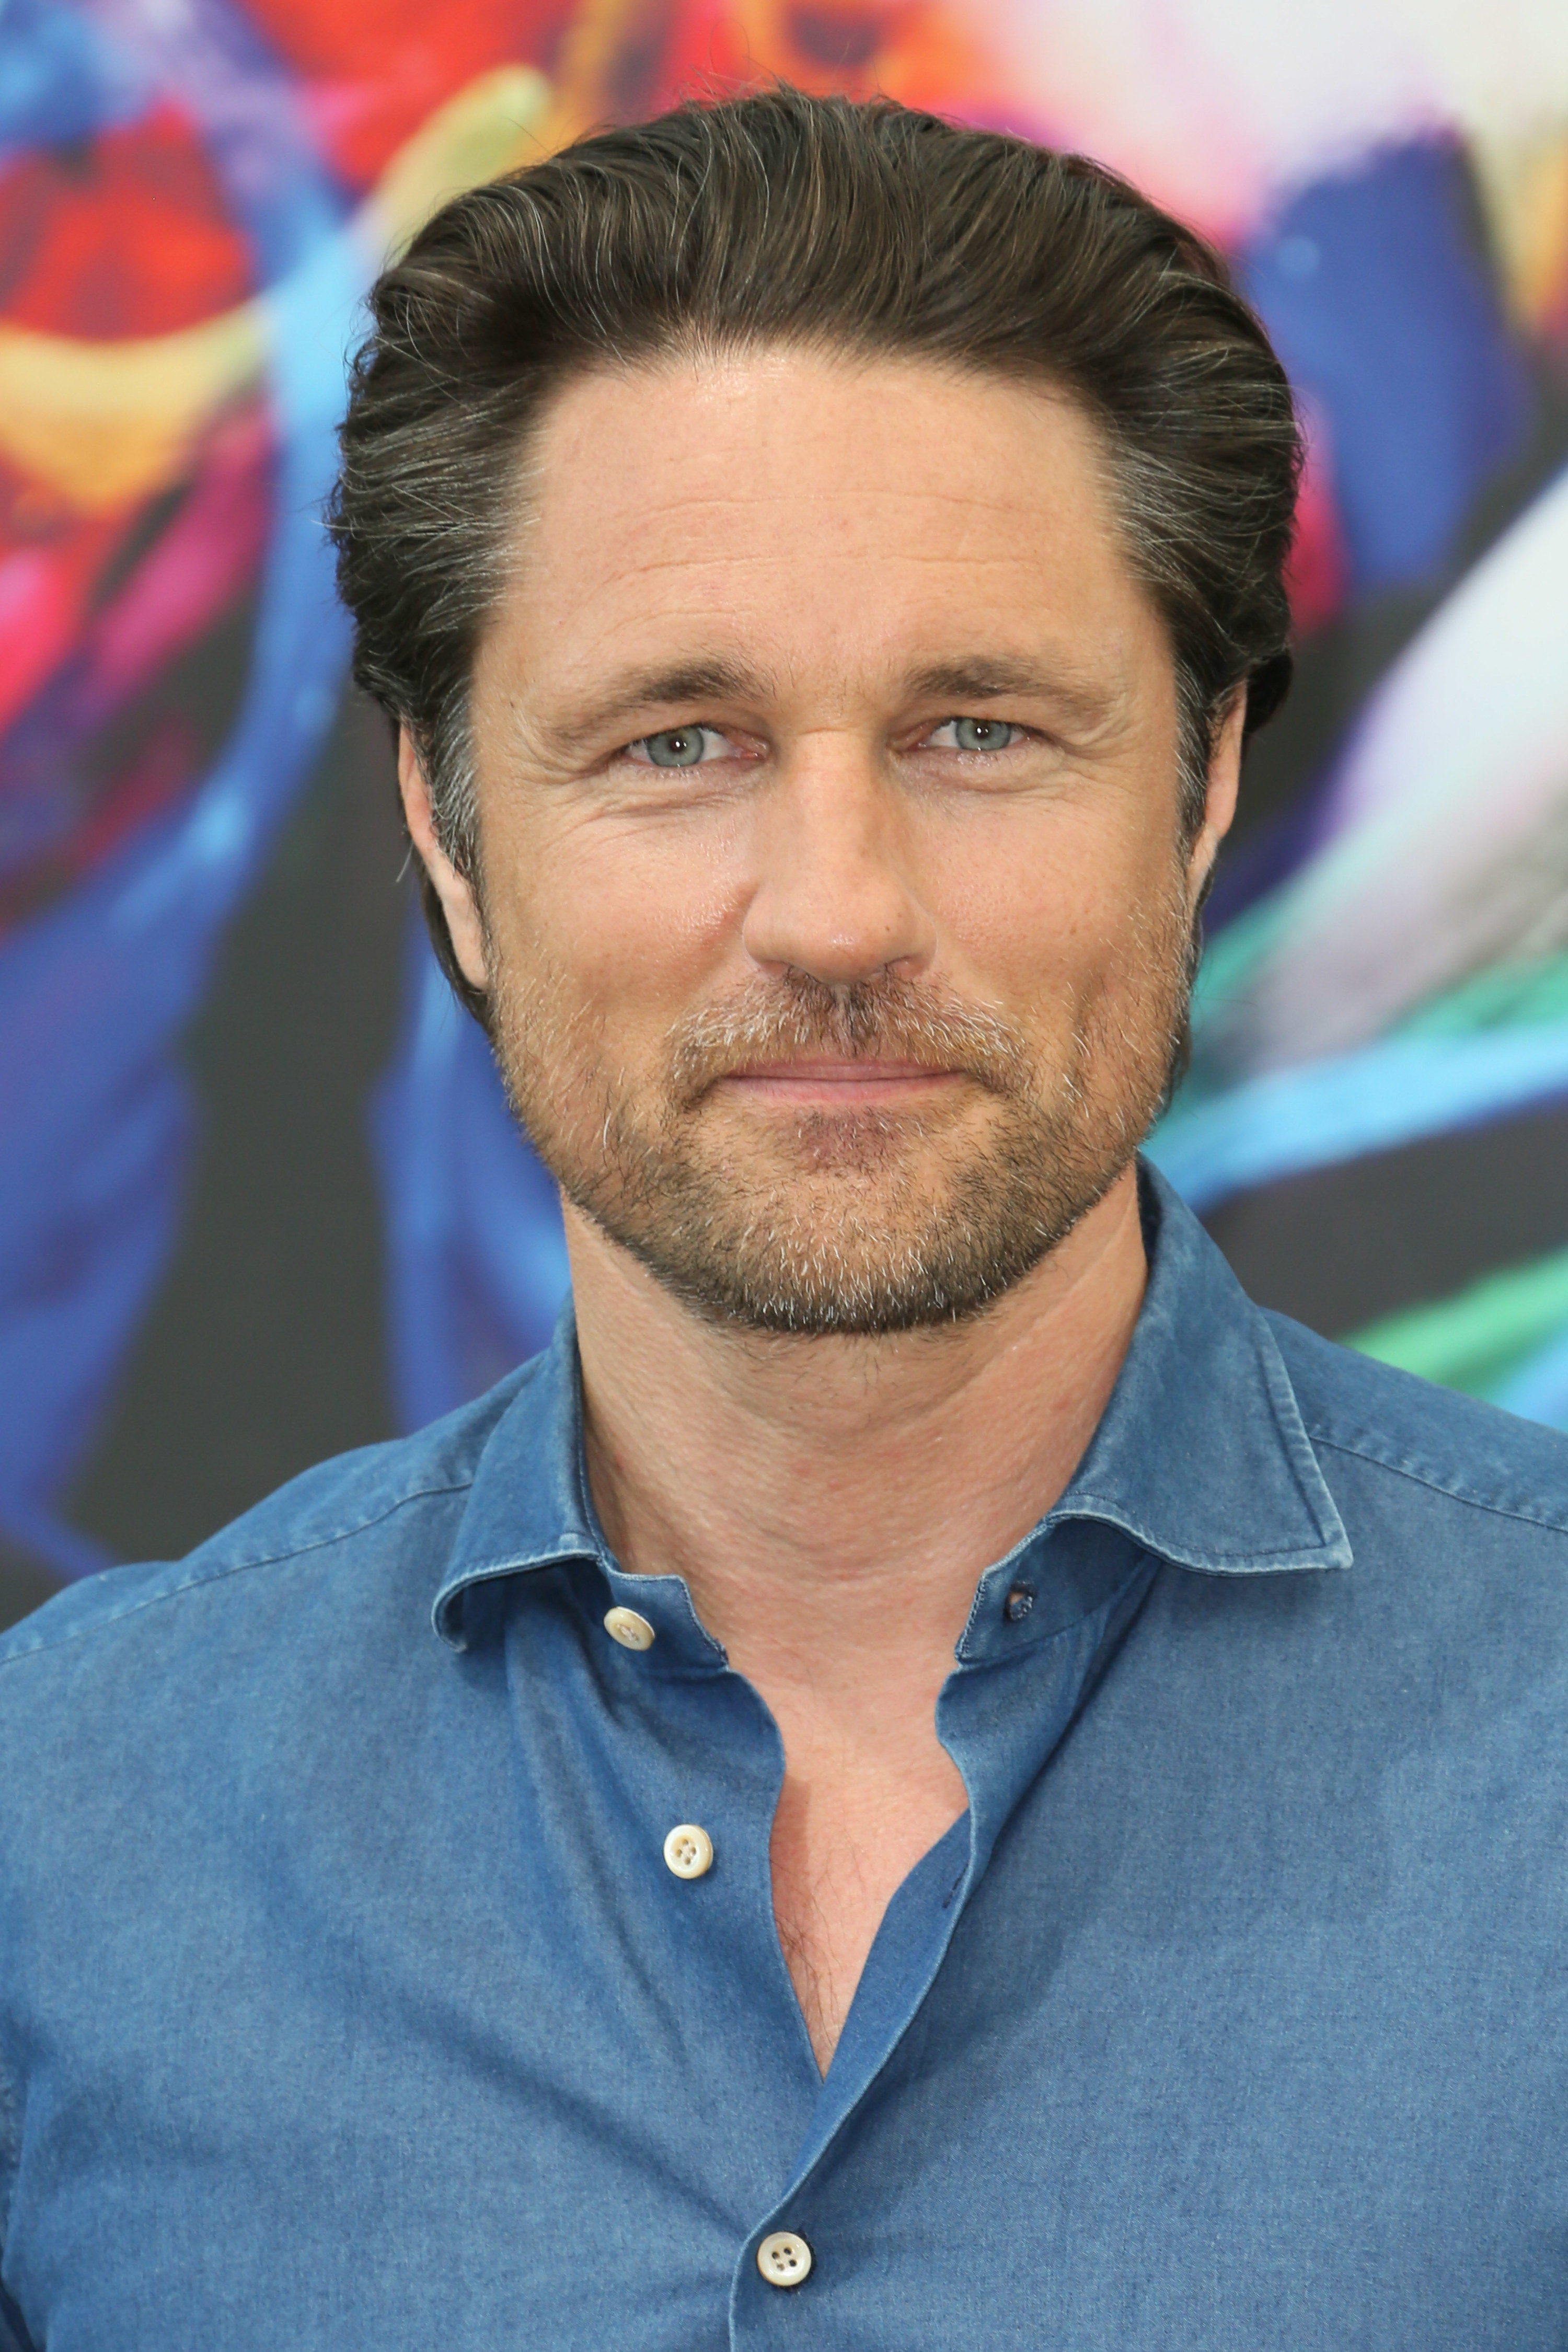 Martin Henderson siles for camera in blue button-up